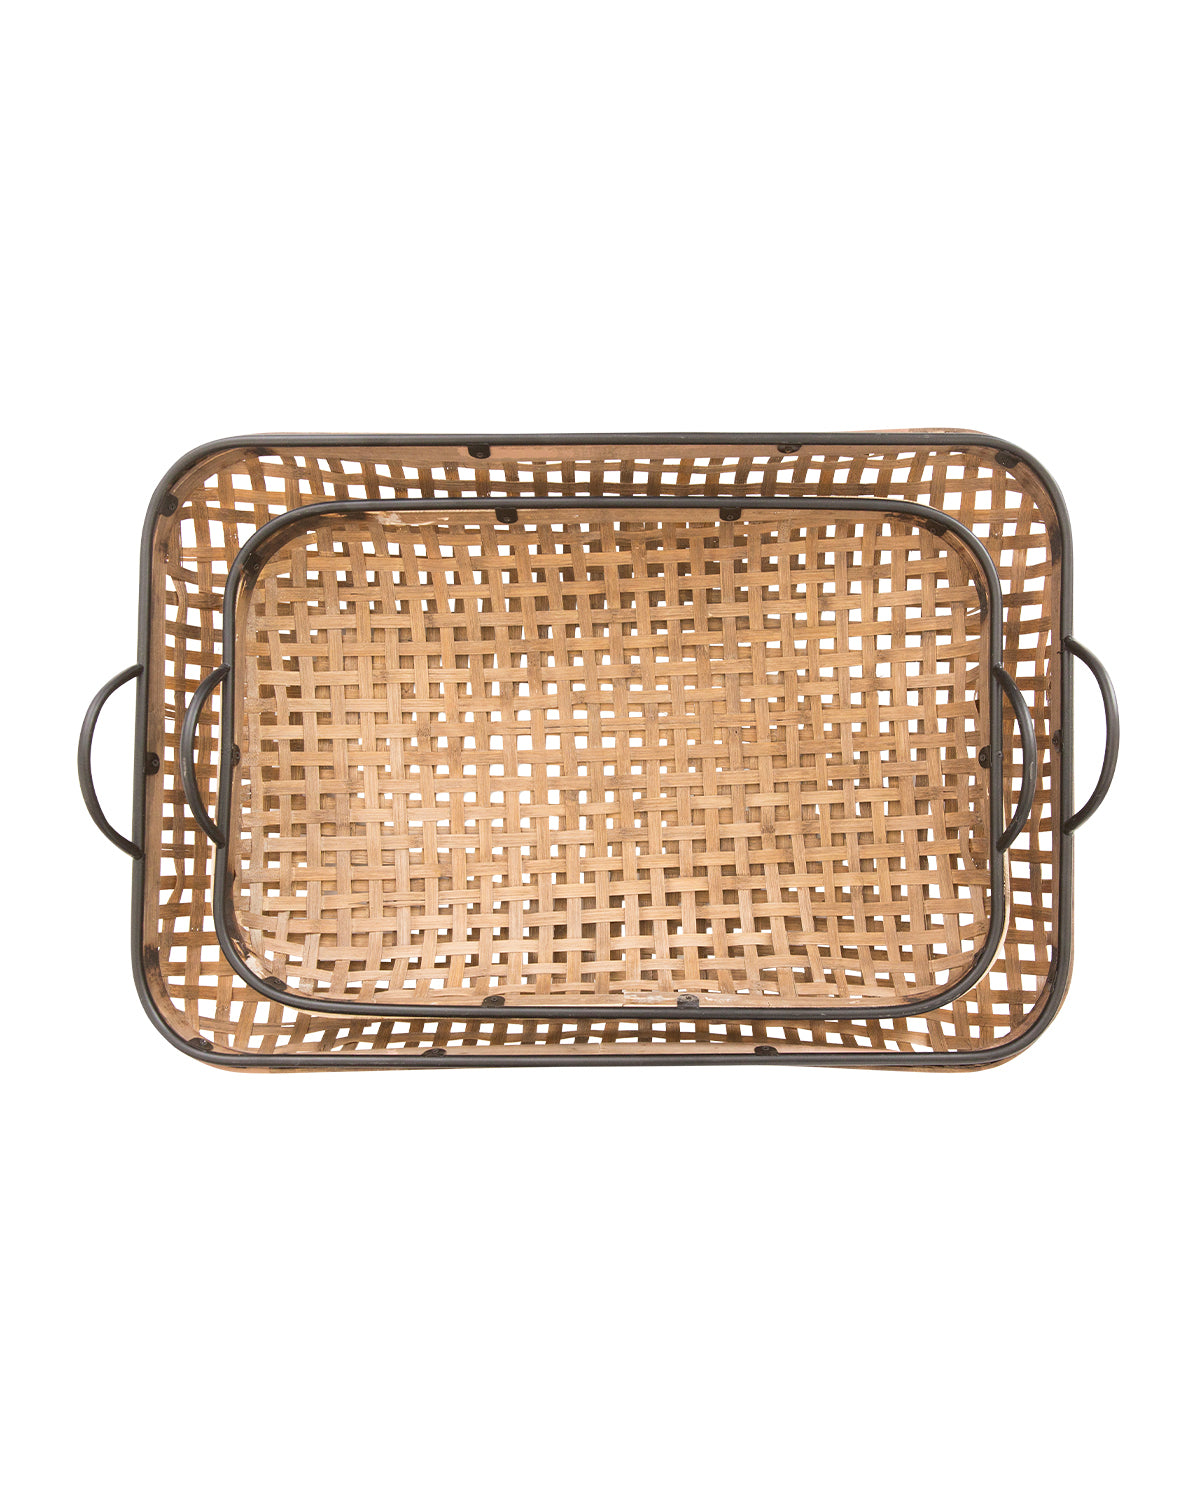 Rosemere Woven Trays